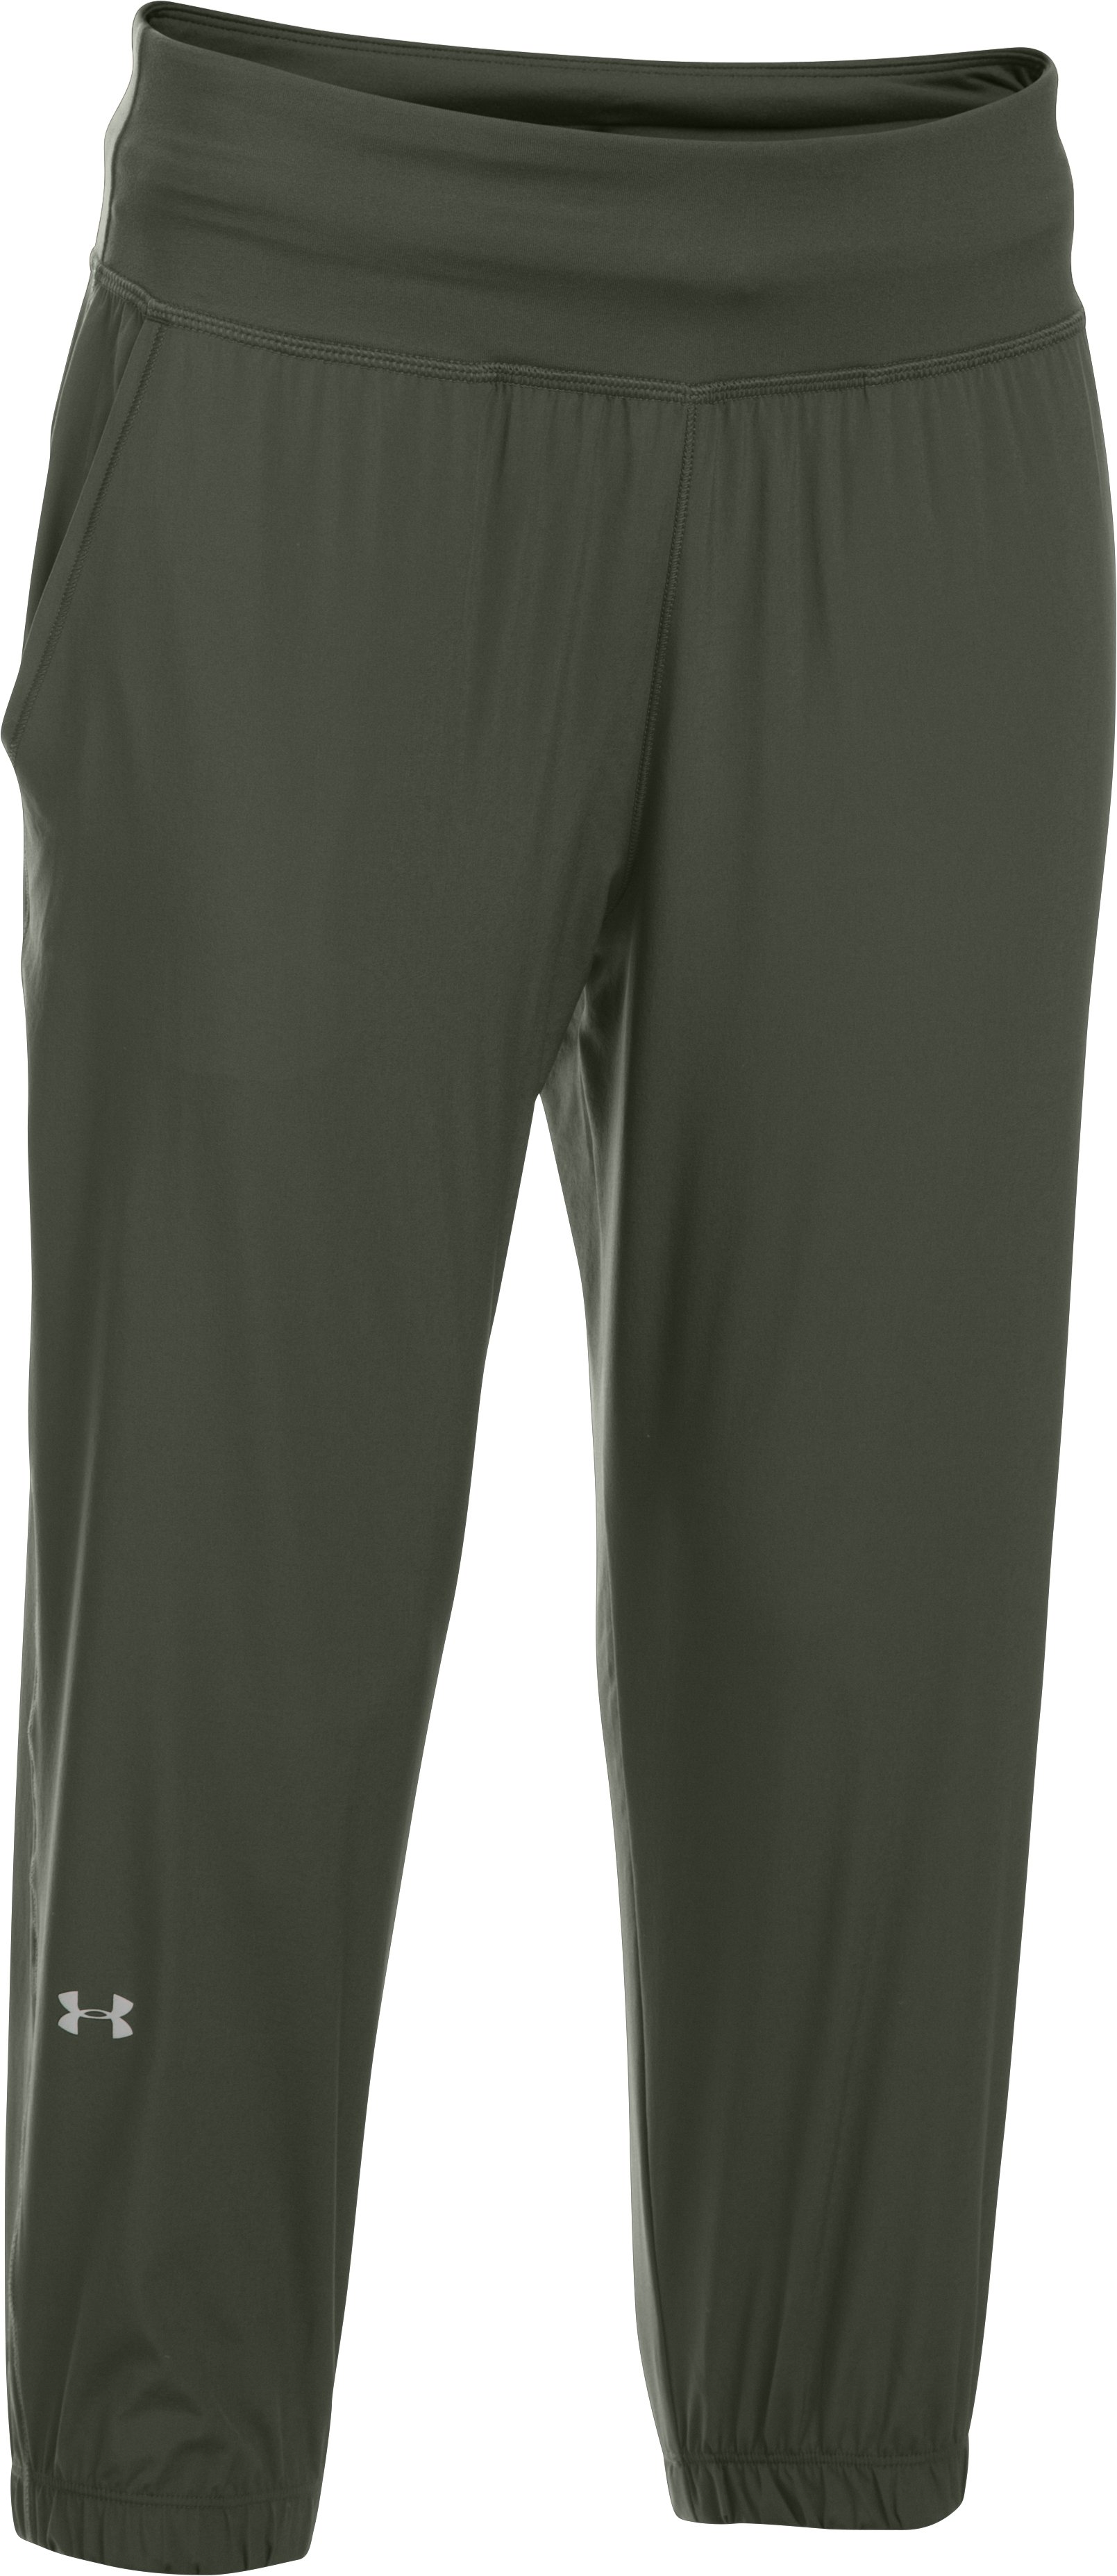 Women's Under Armour Sunblock Crop, DOWNTOWN GREEN, undefined